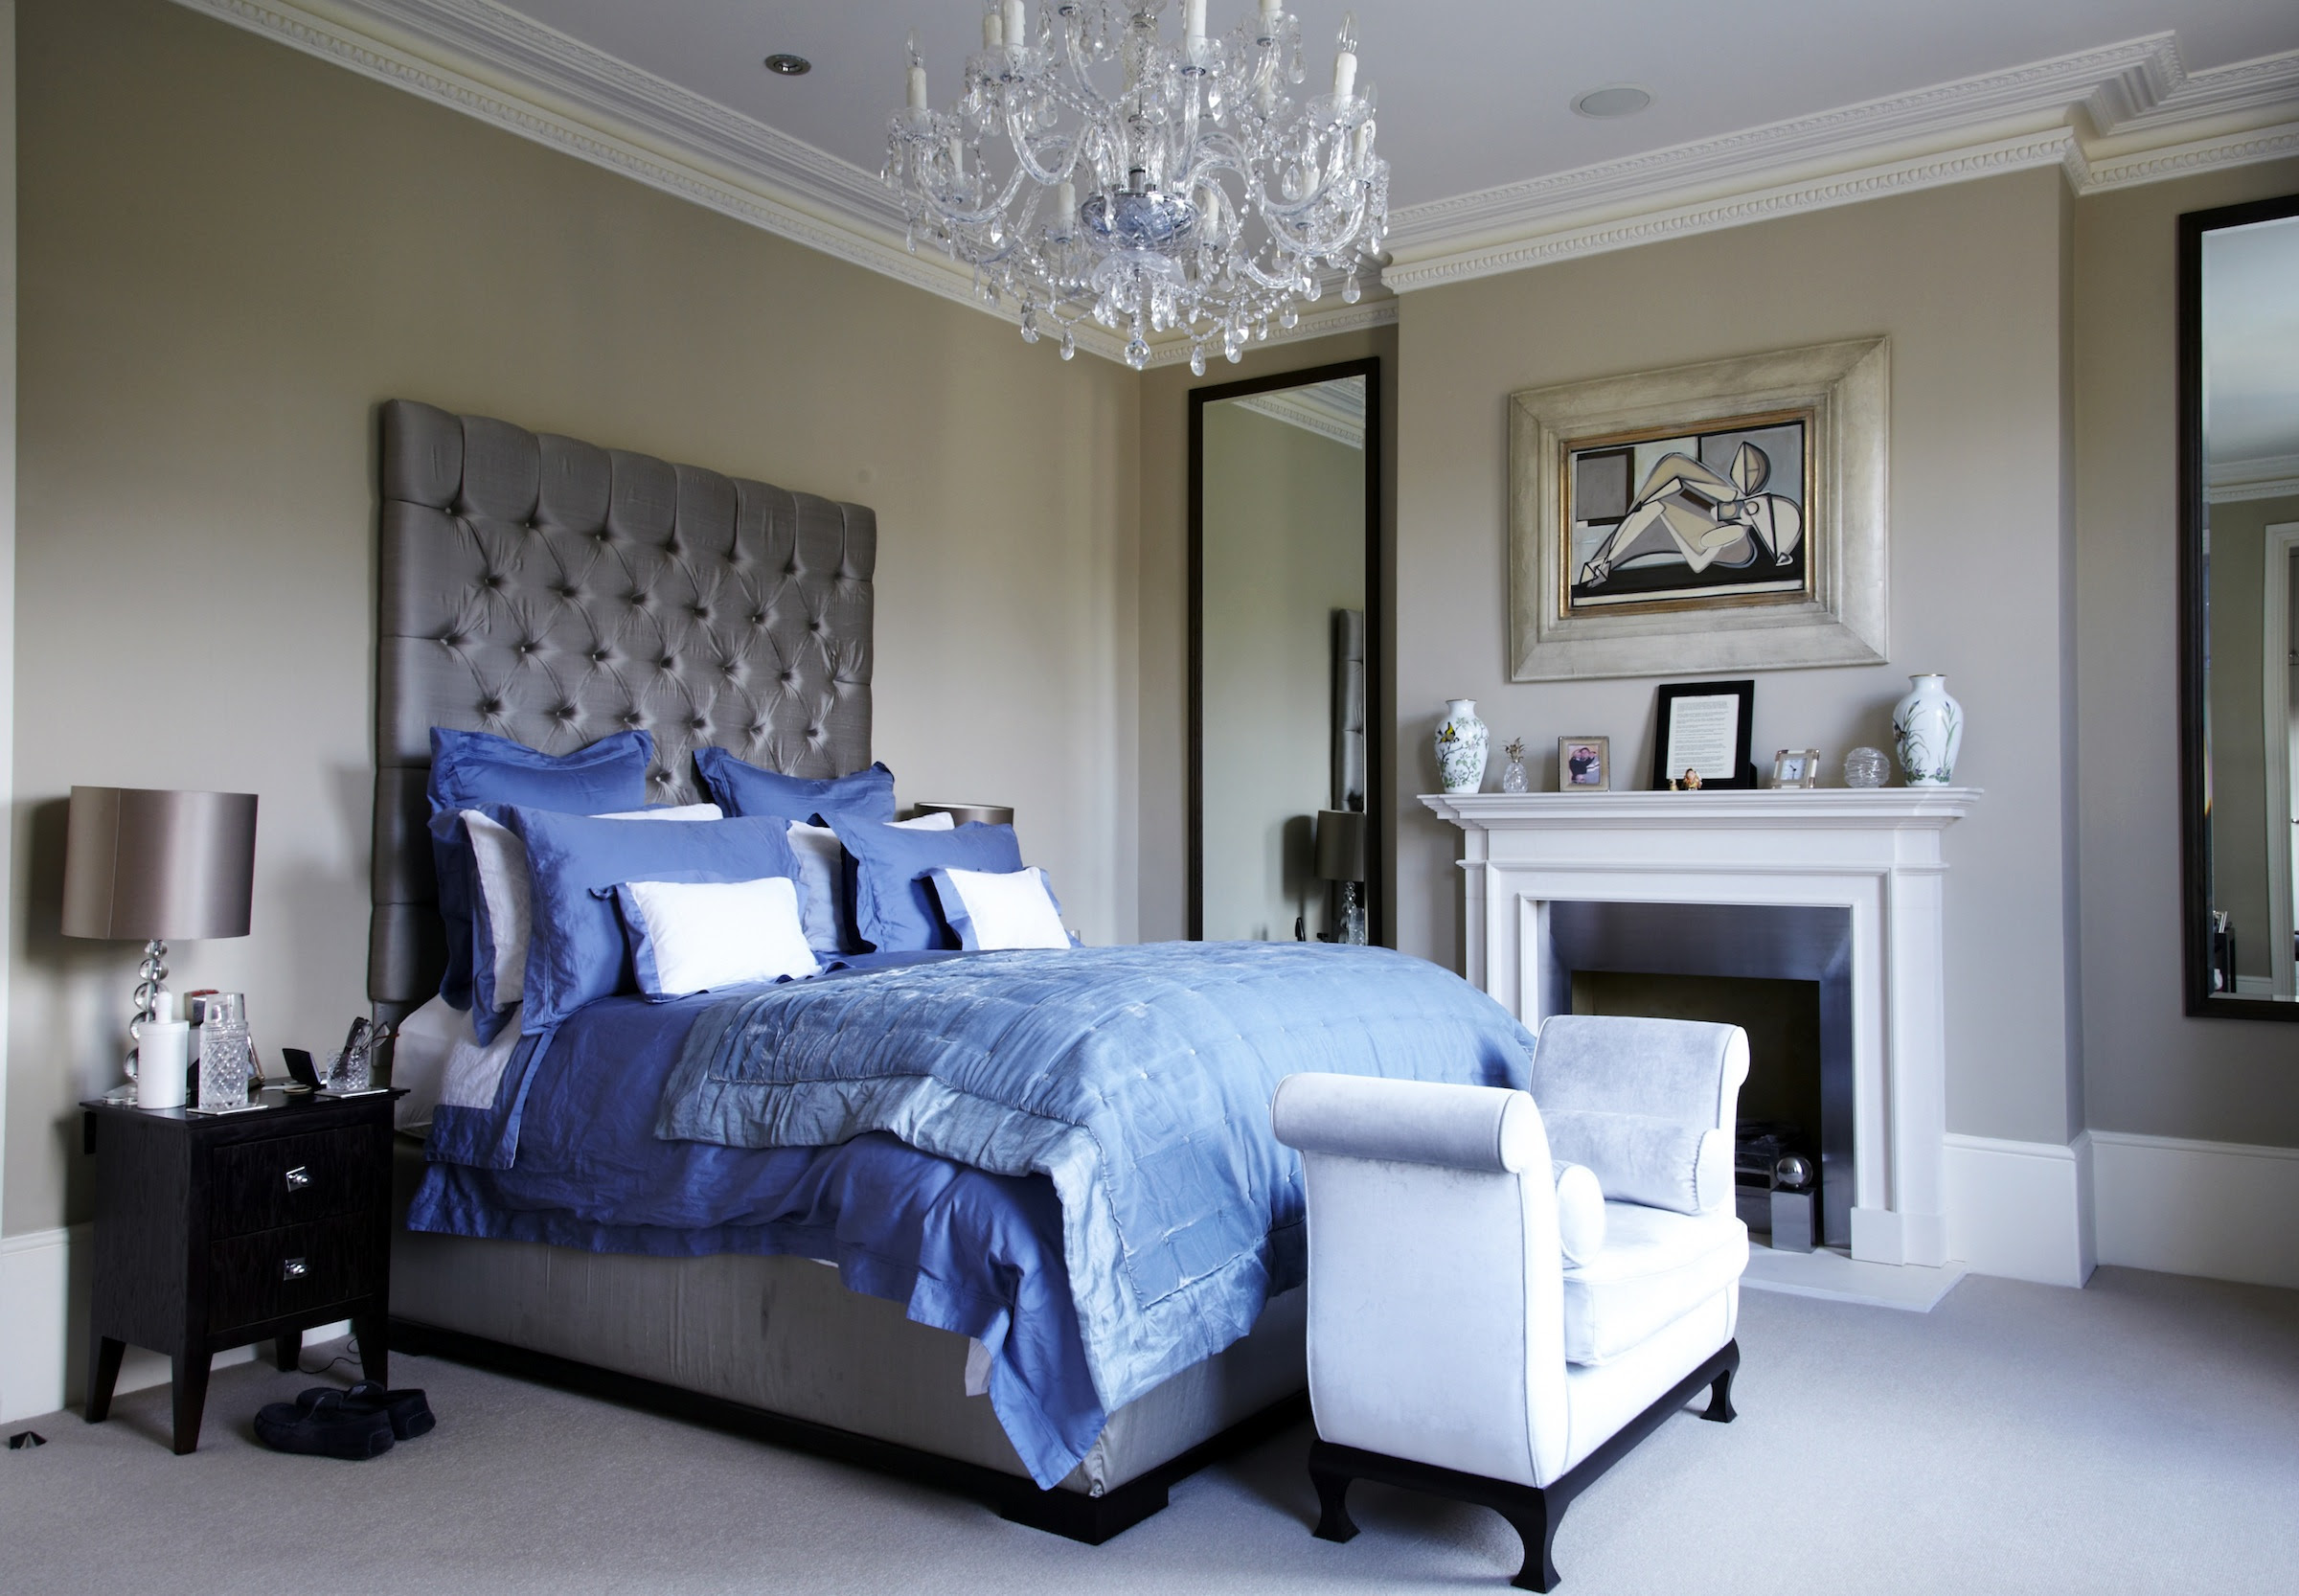 20 Inspiring Contemporary British Bedrooms - Dk Decor